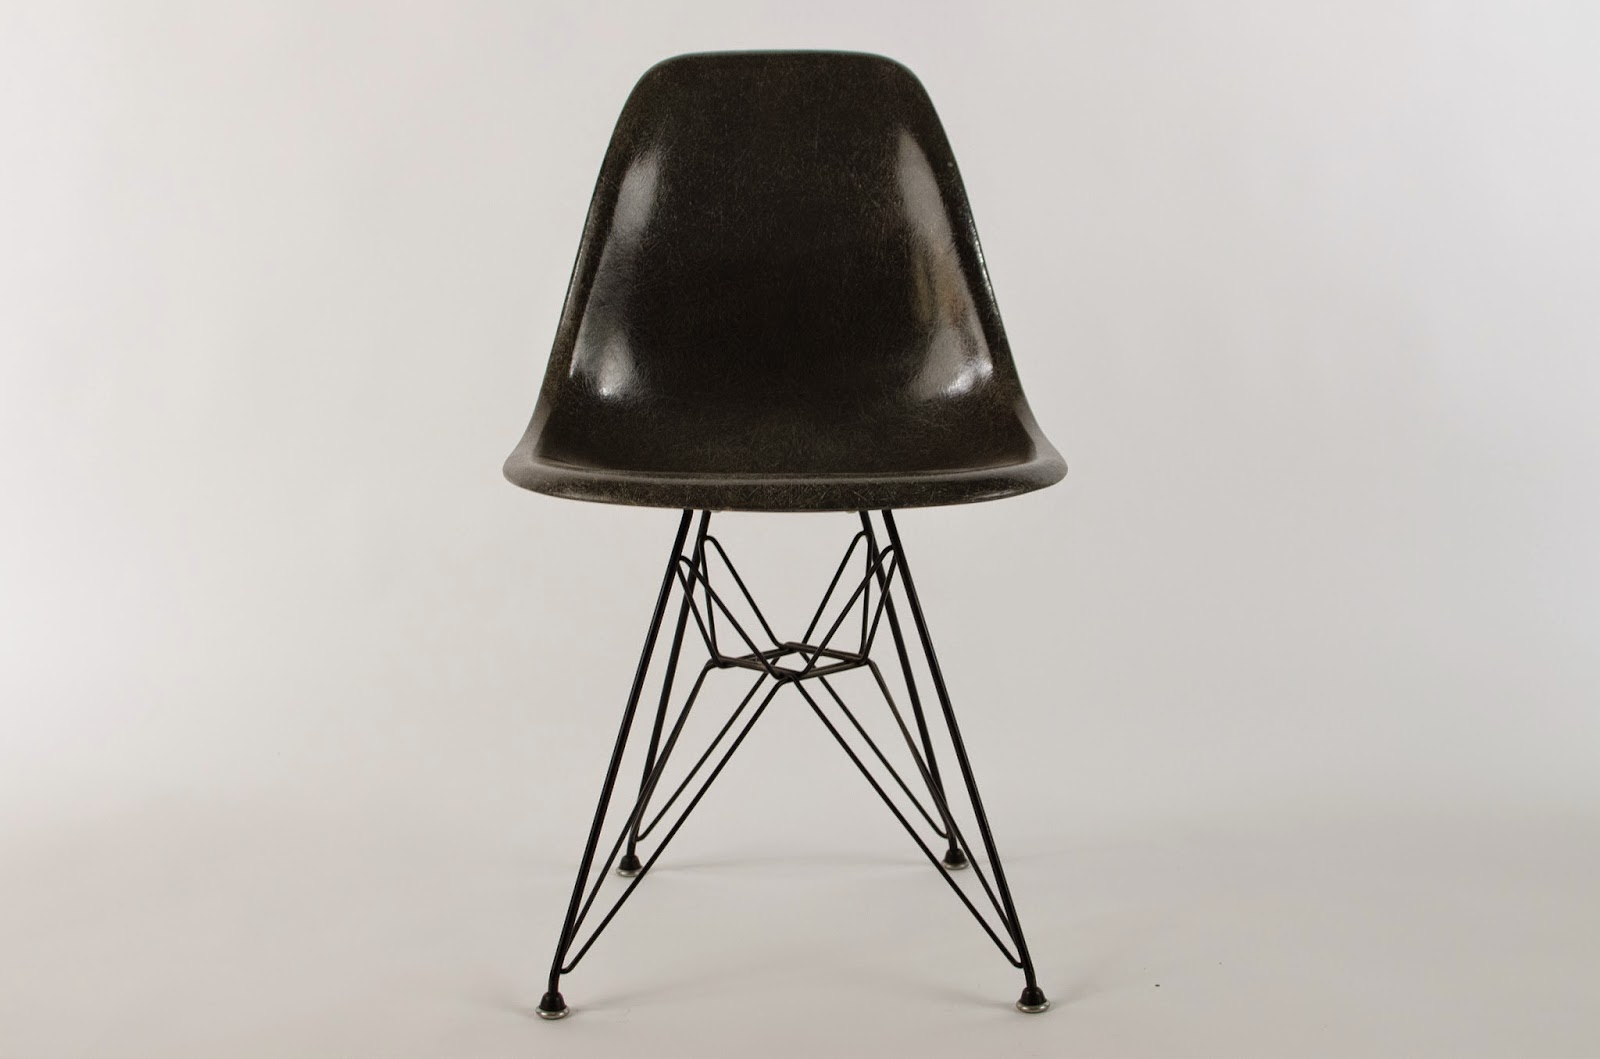 Just In Modern Charles Eames DSR Fiberglass Side Chair Eiffel Tower